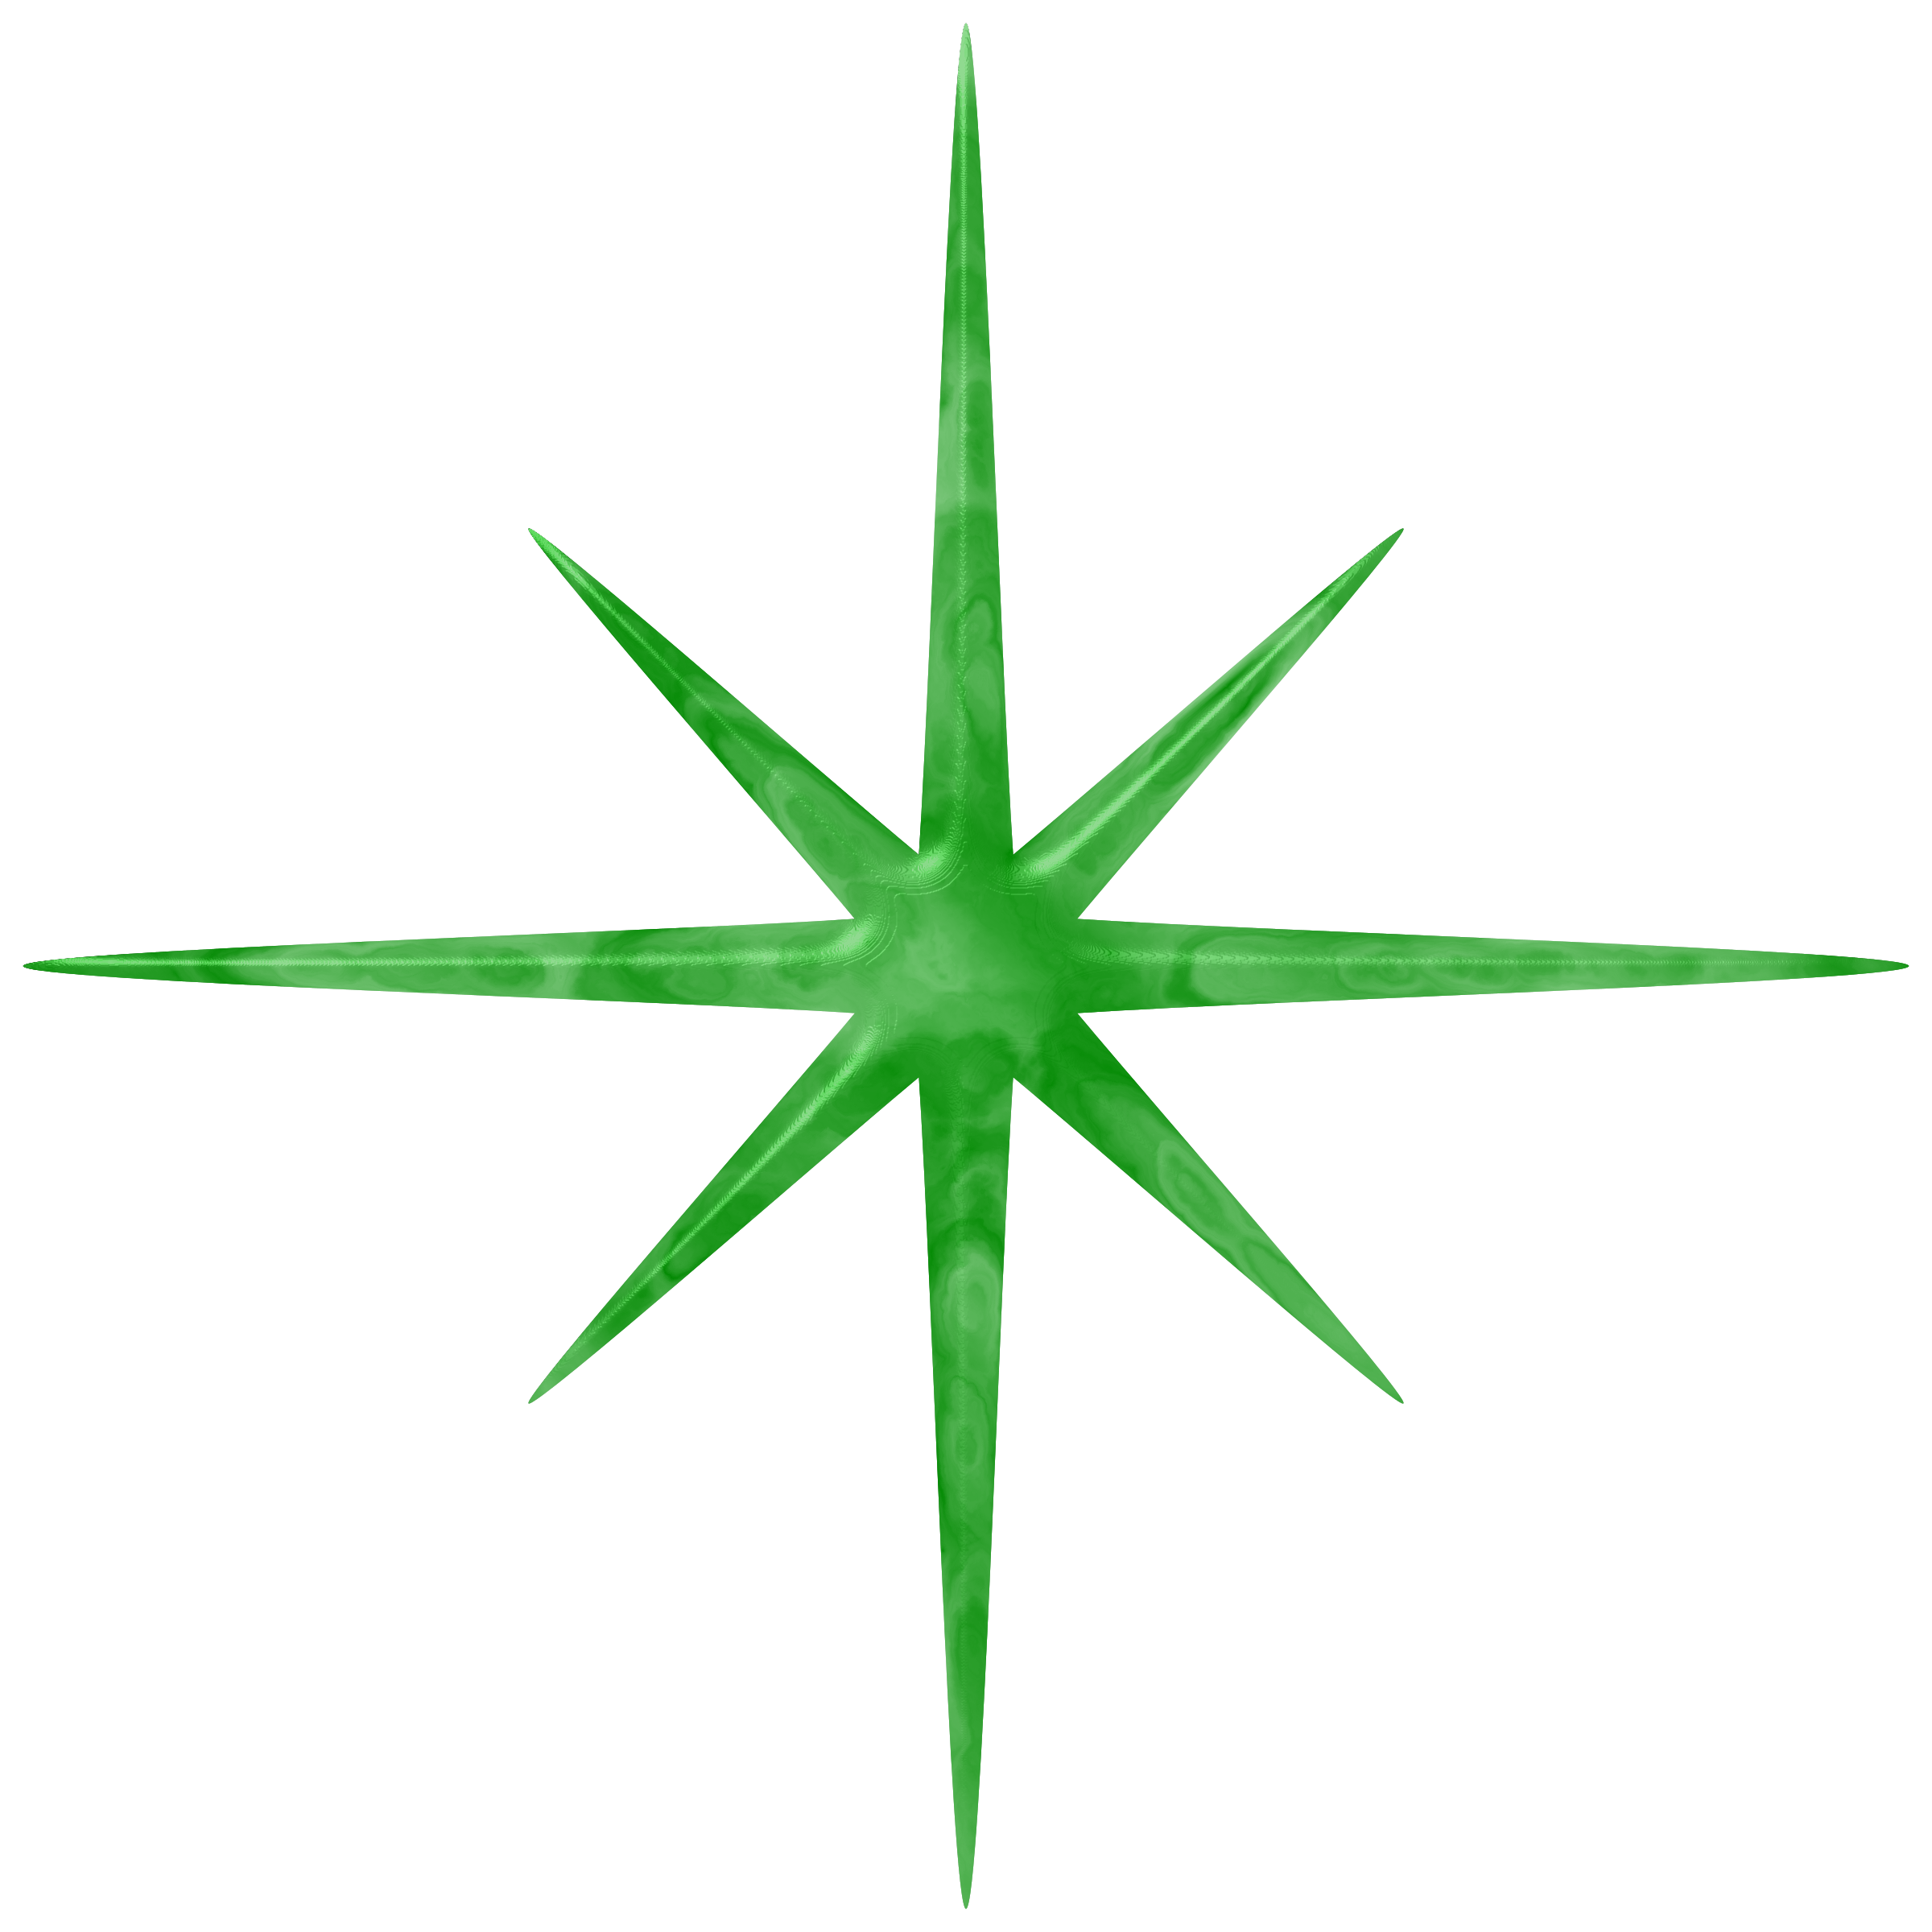 Star sparkle clipart free Clipart - Jade star free